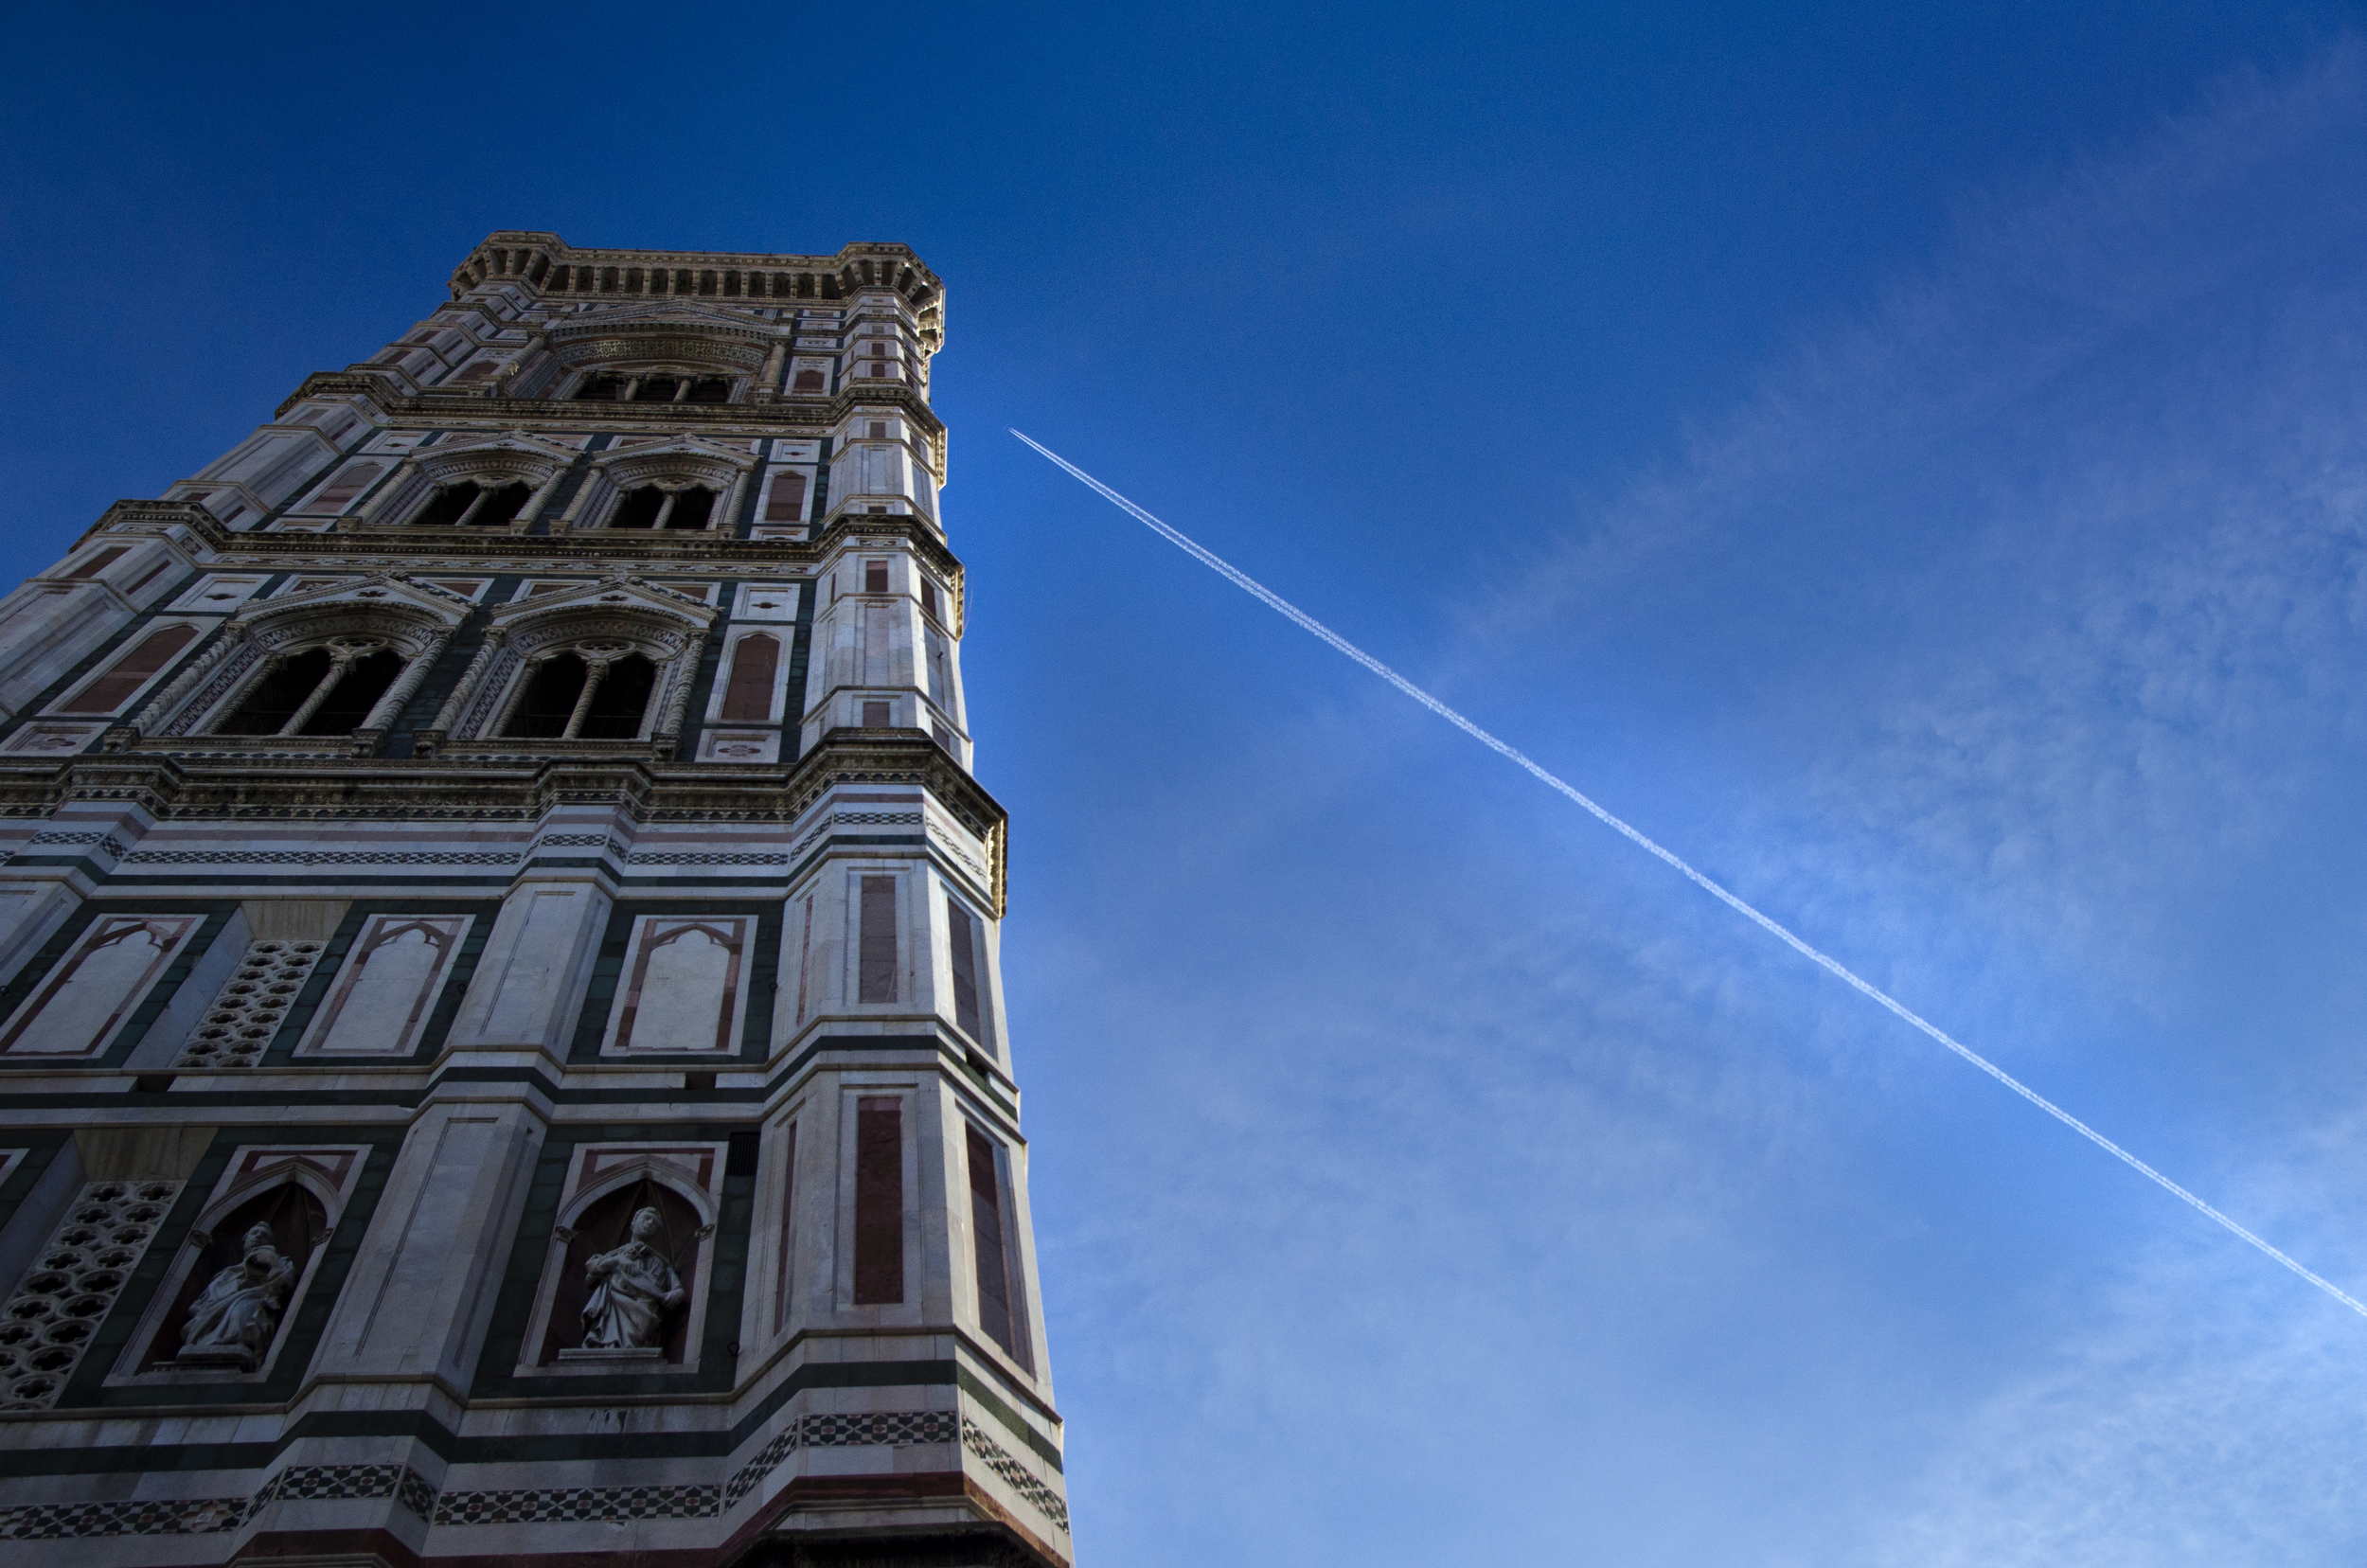 The clang of the bells of the Bell Tower of The Duomo in Florence, Italy boomed through the morning air on All Saint's Day on Sunday, November 2, 2014.